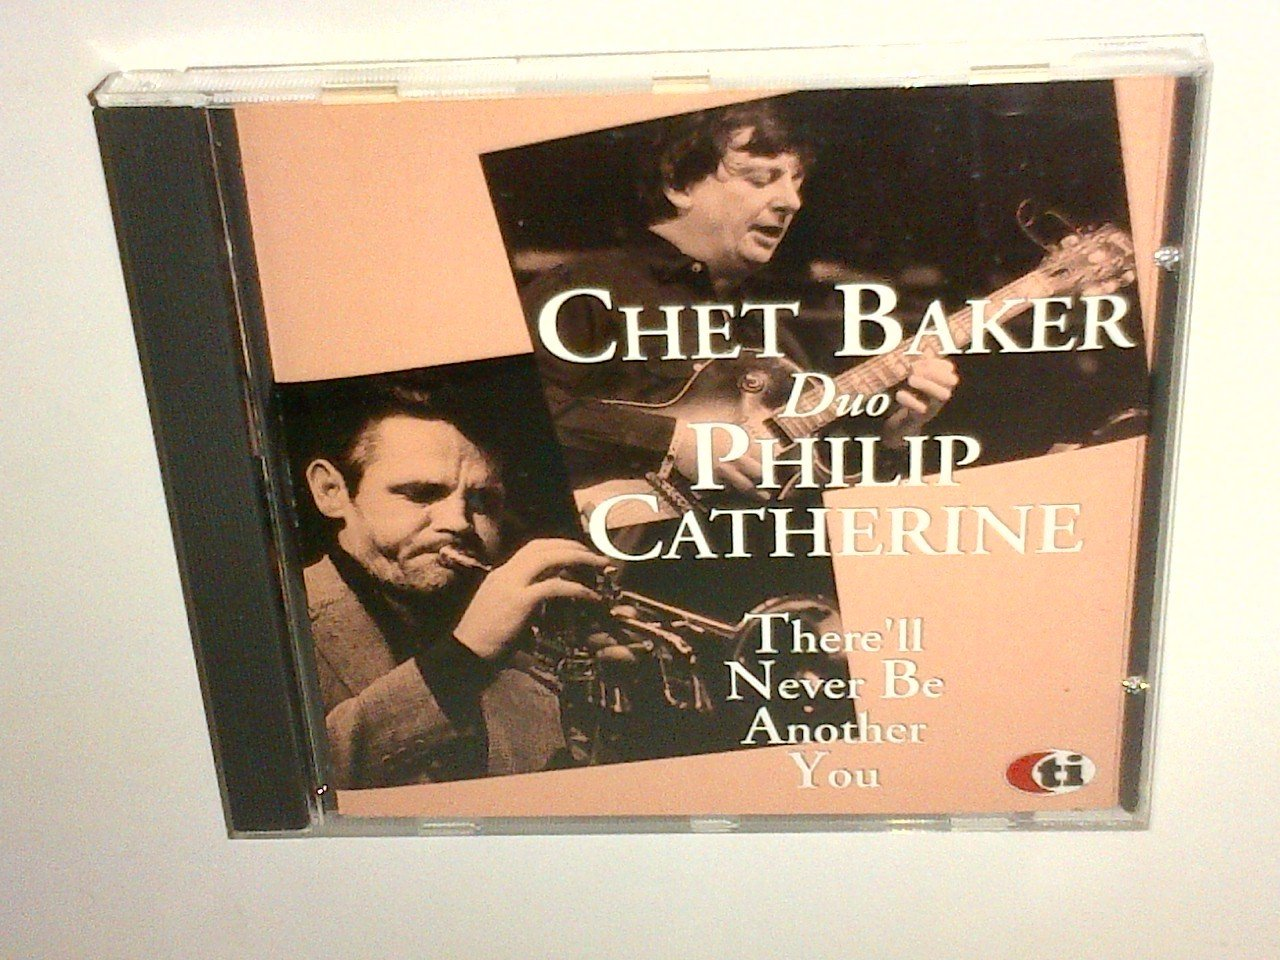 Chet Baker duo Philip Catherine There`ll Never Be Another Y